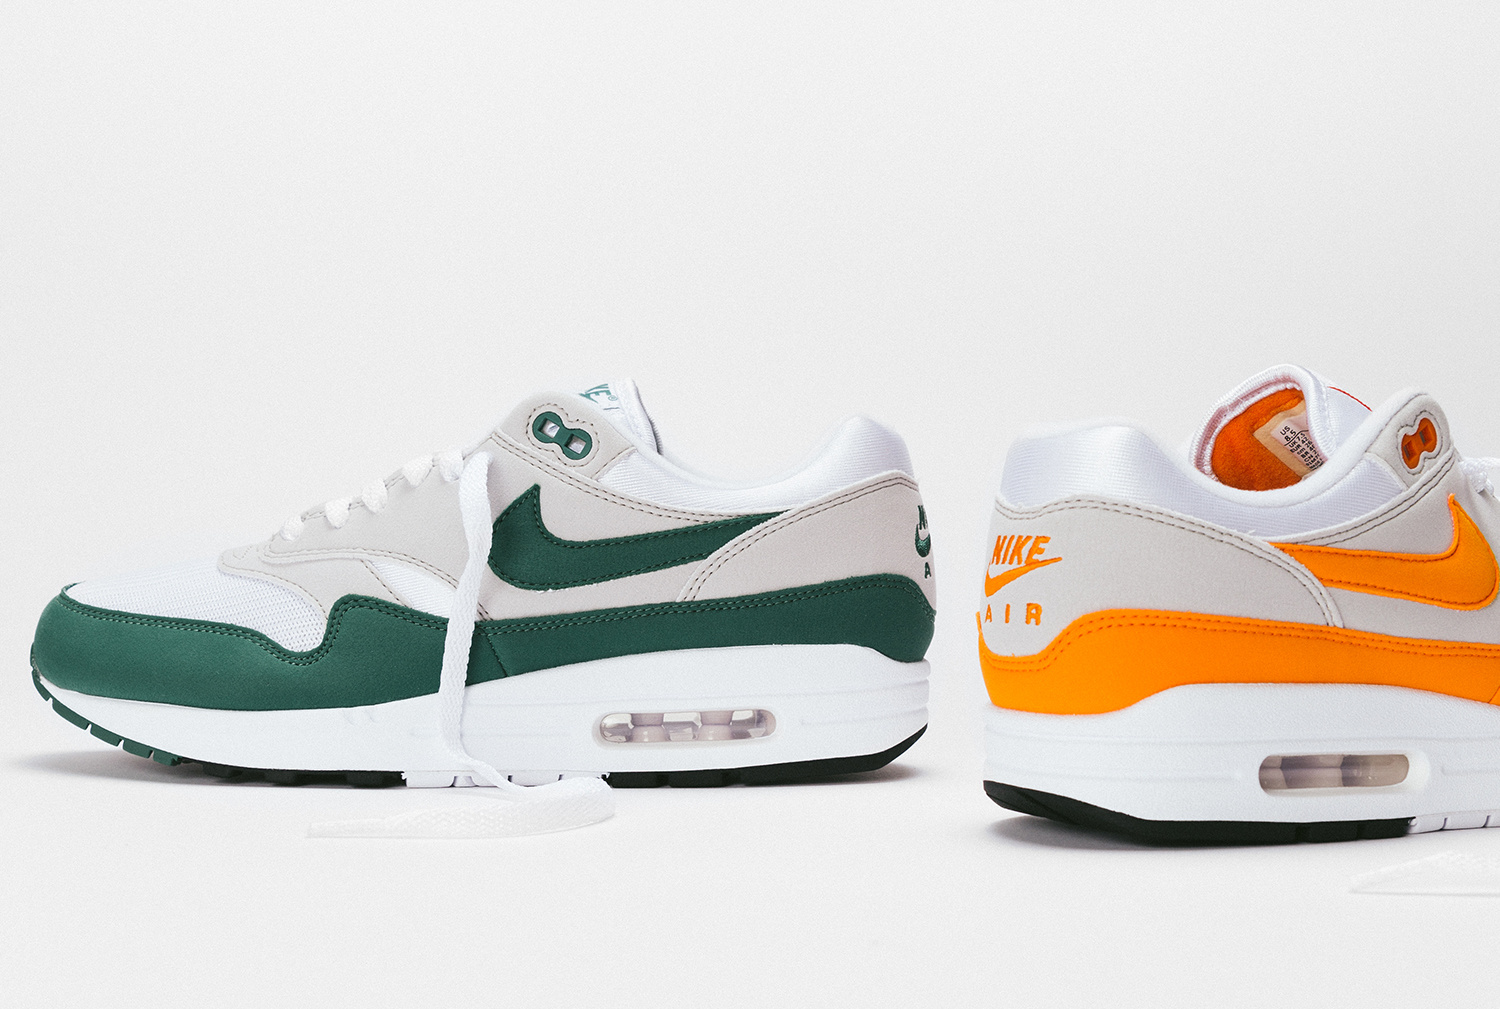 30.07.20 - Nike Air Max 1 Magma Orange and Evergreen Aura